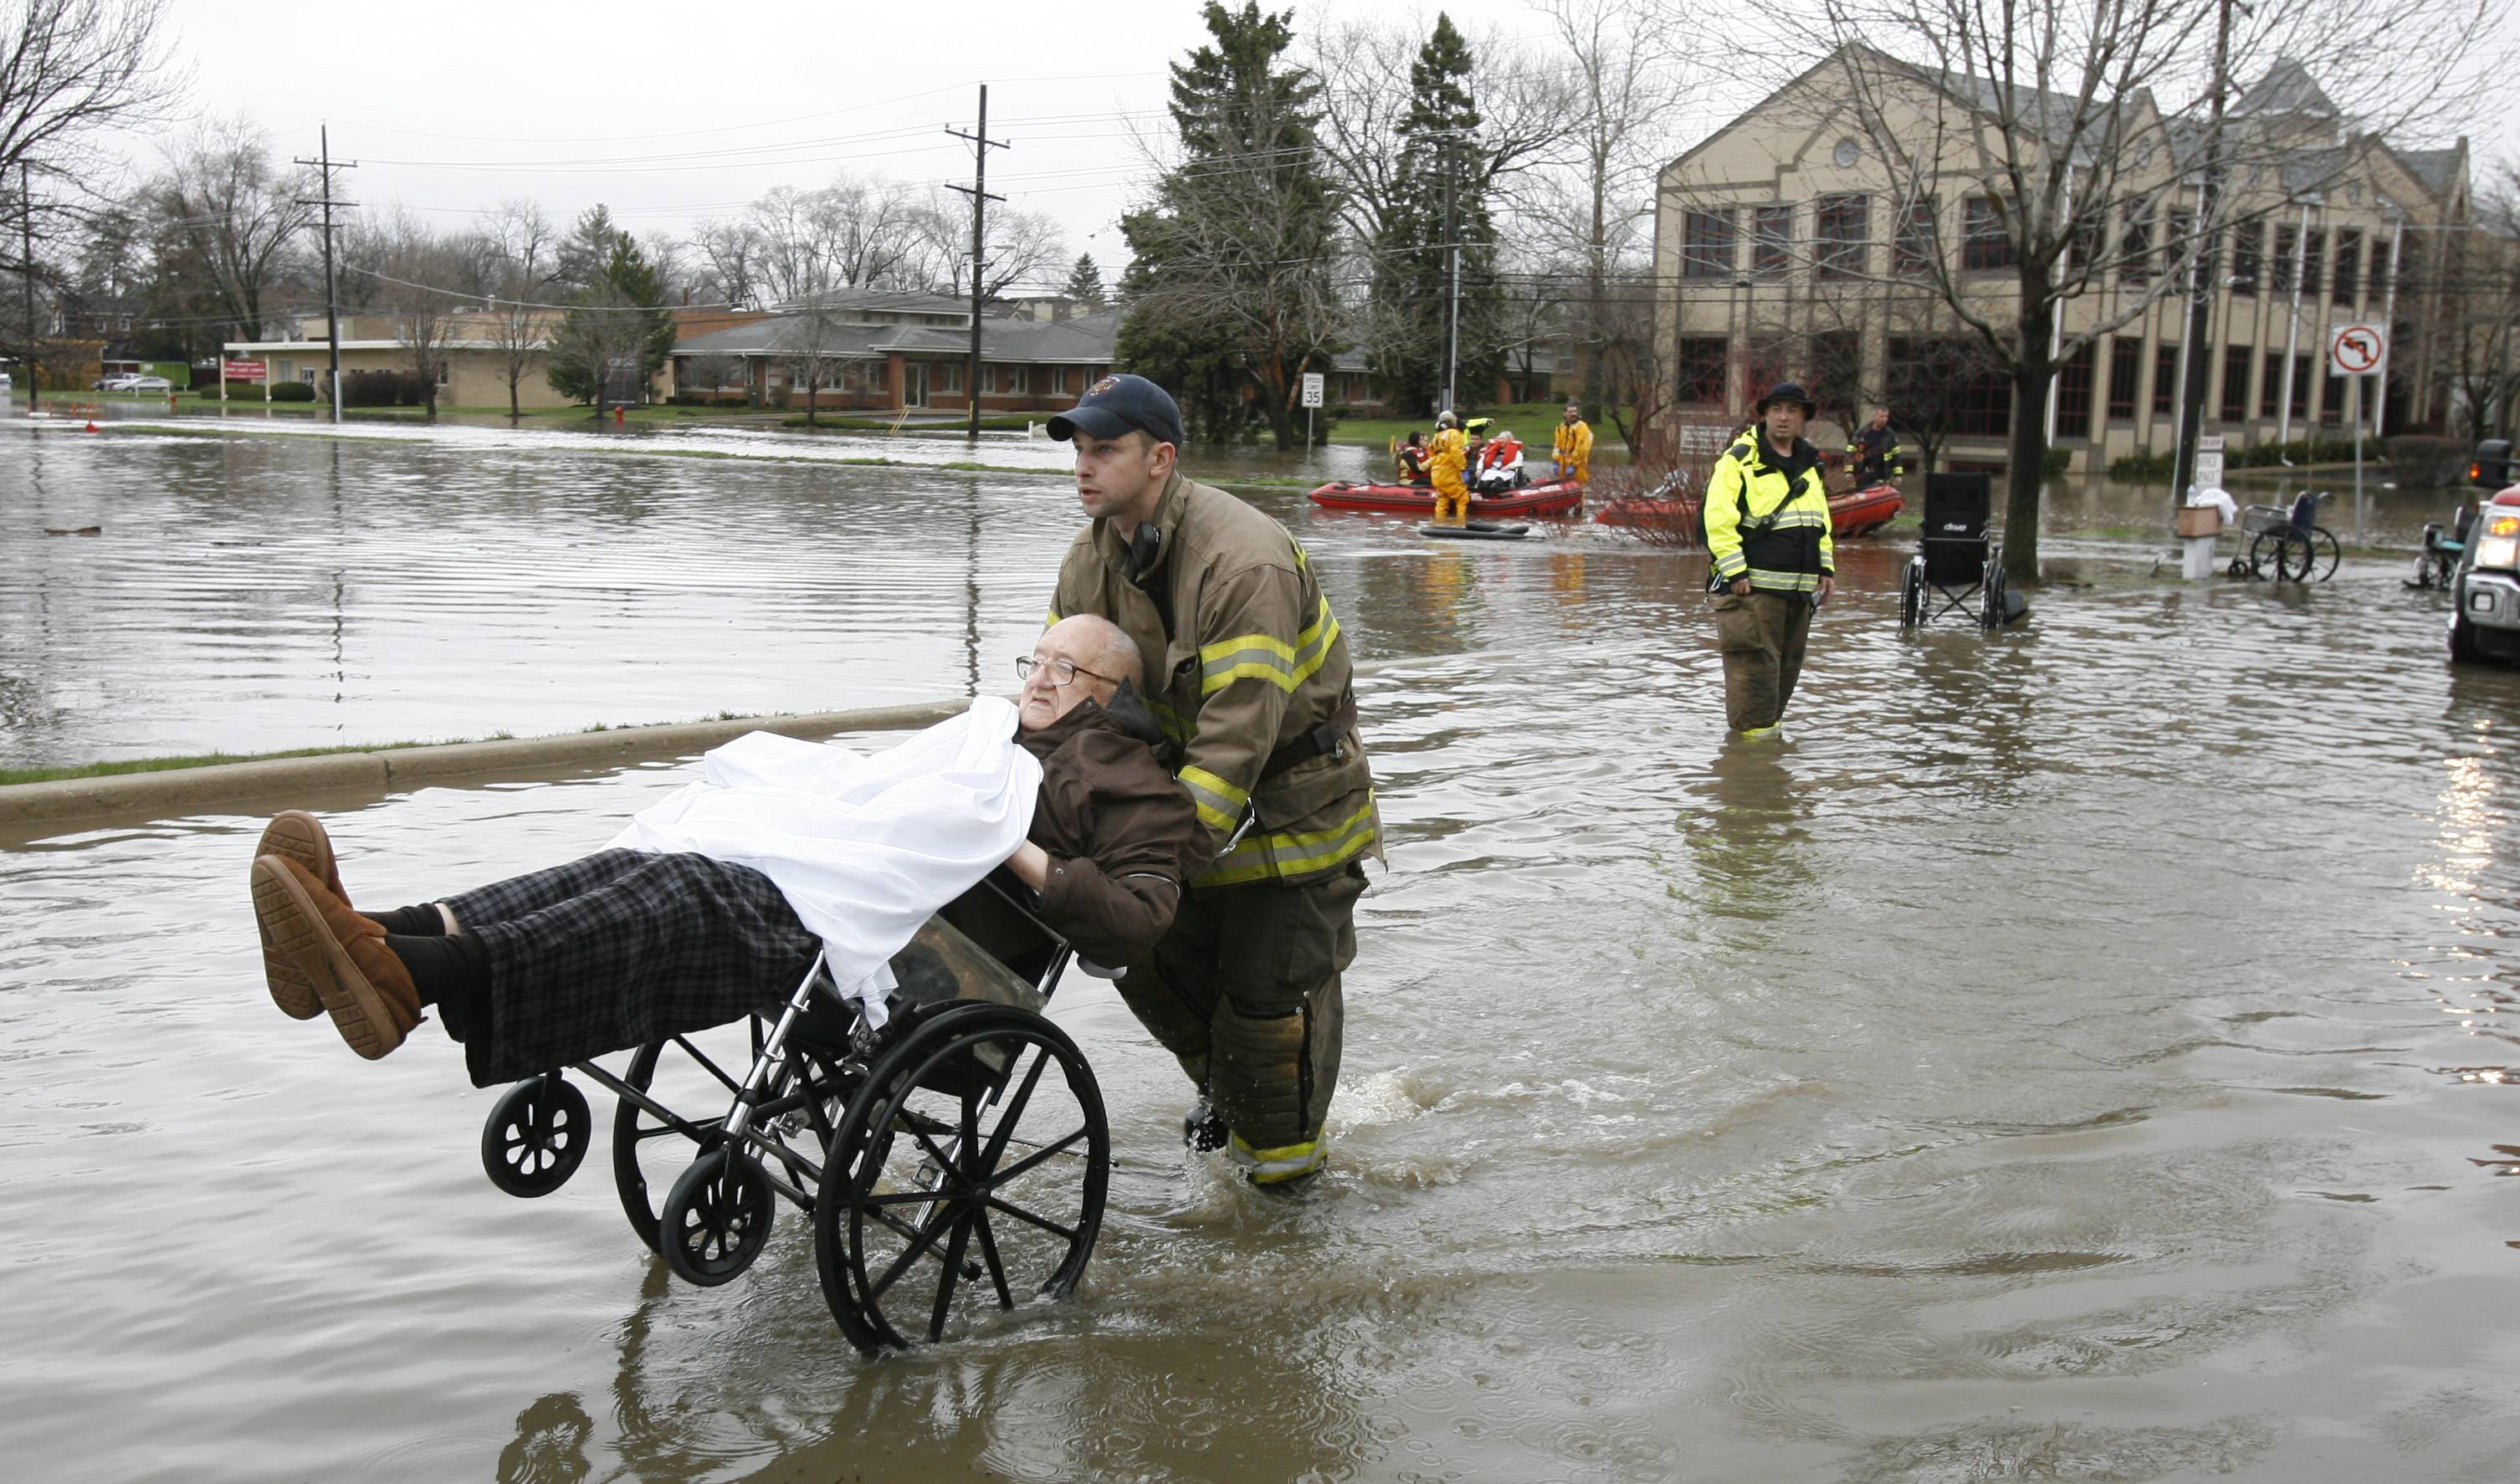 Flooding along Rt. 53 forces the evacuation of residents of the Snow Valley Nursing and Rehabilitation Center in Lisle.